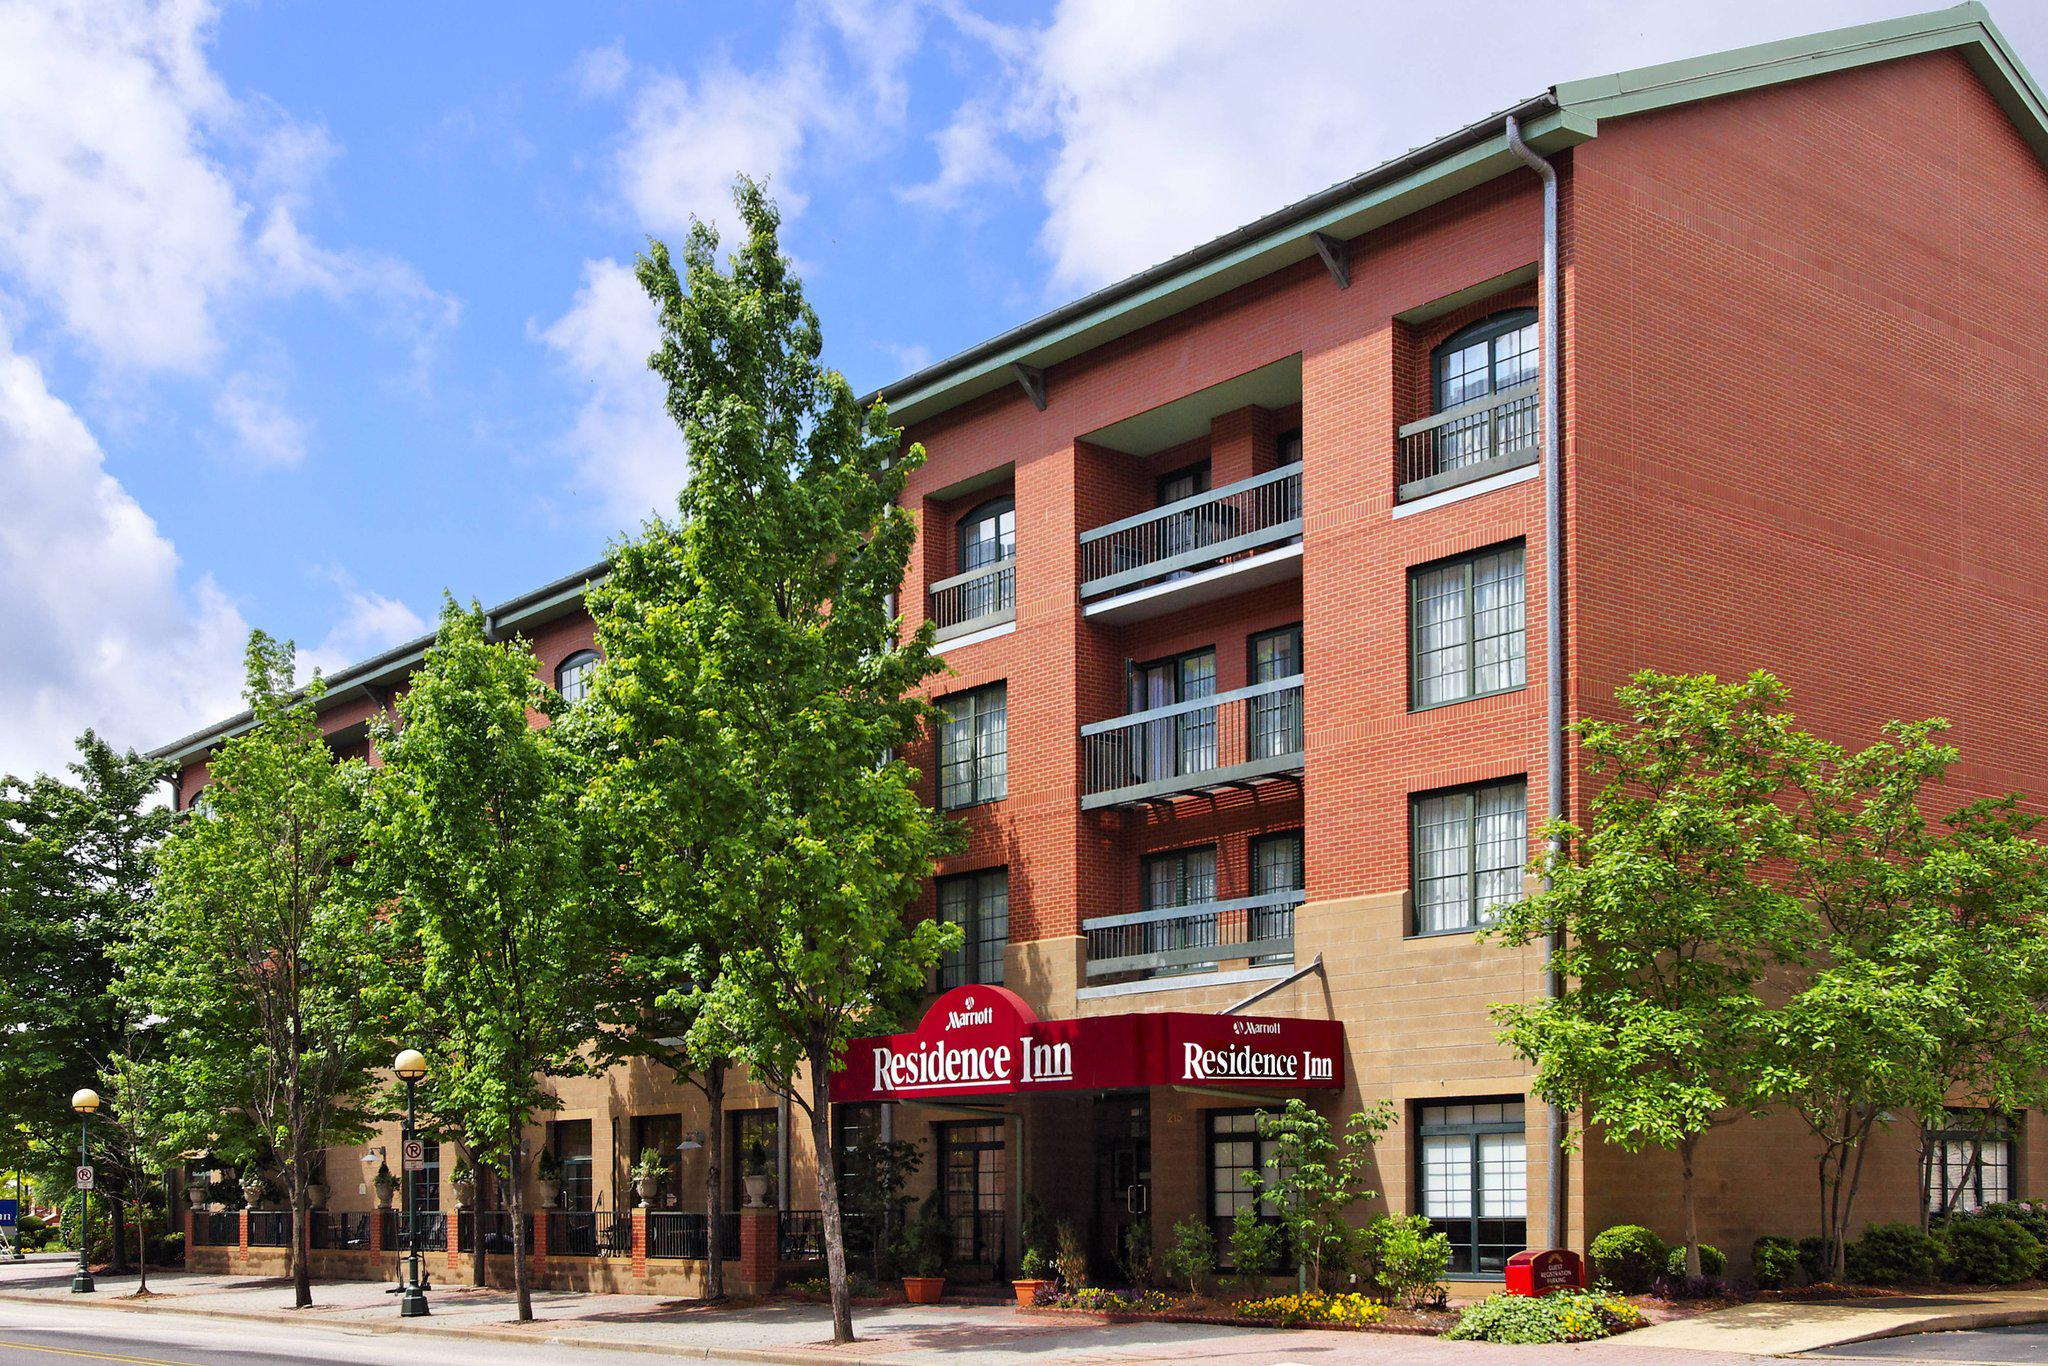 Residence Inn by Marriott Chattanooga Downtown